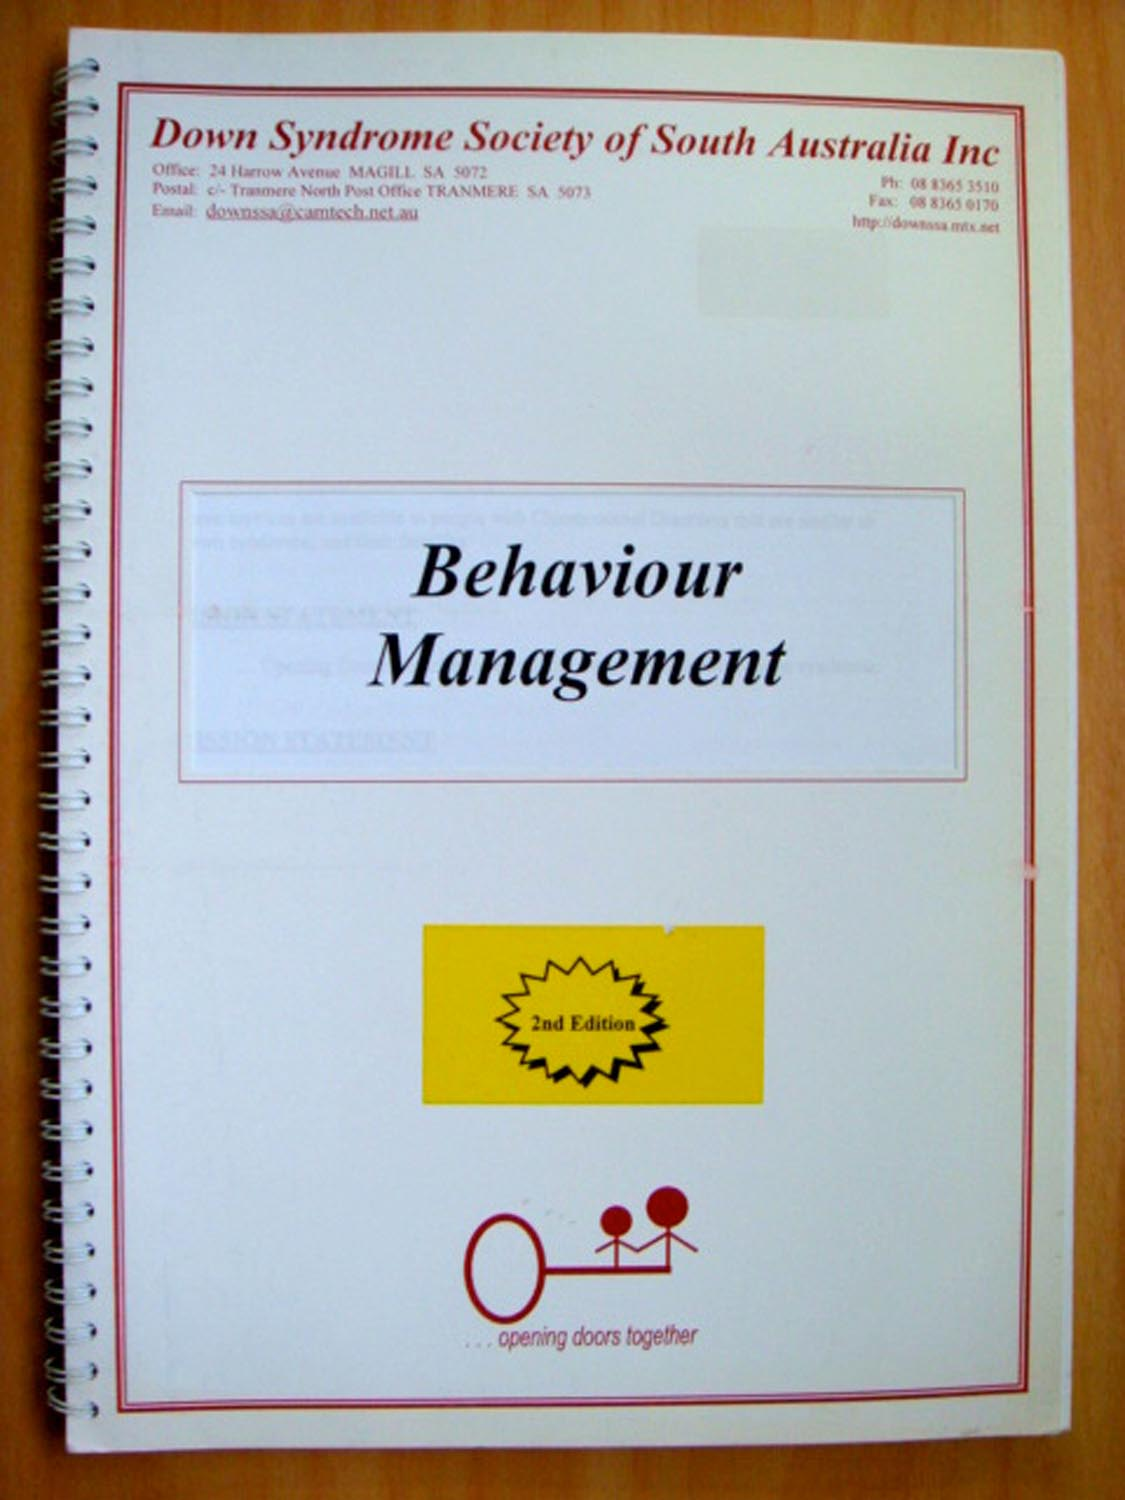 Behaviour Management Image